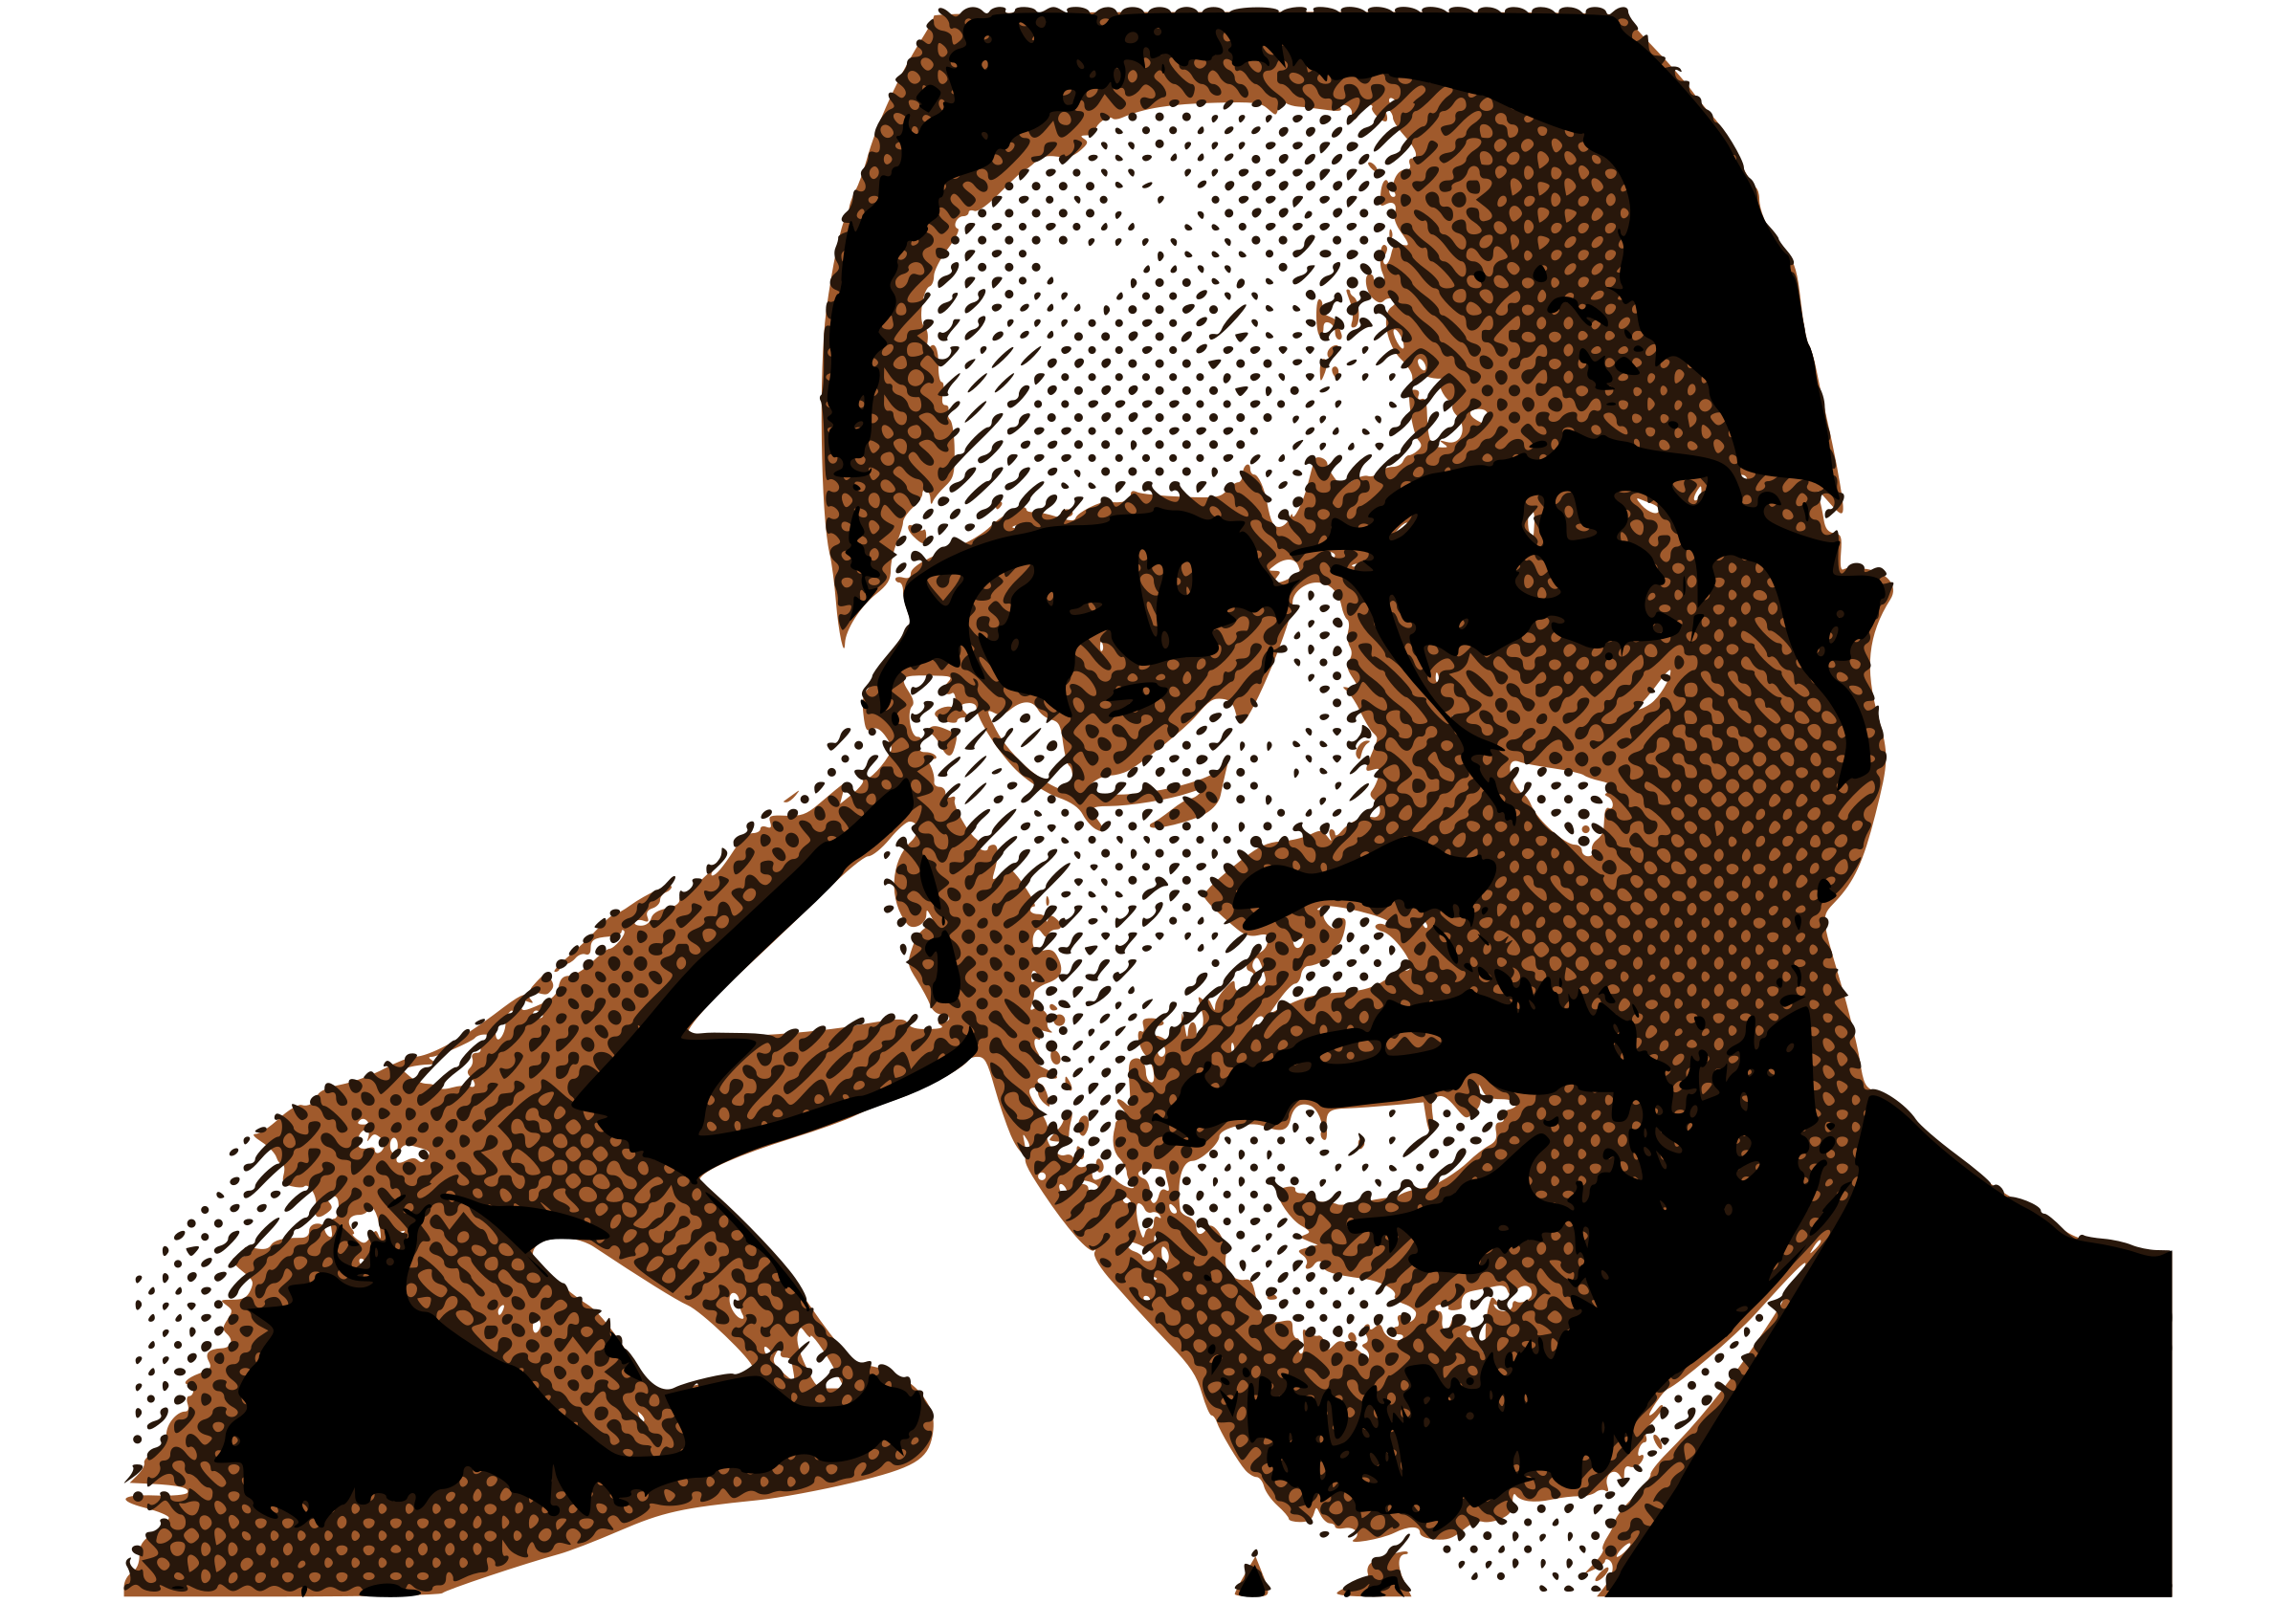 Malcolm X by argumento